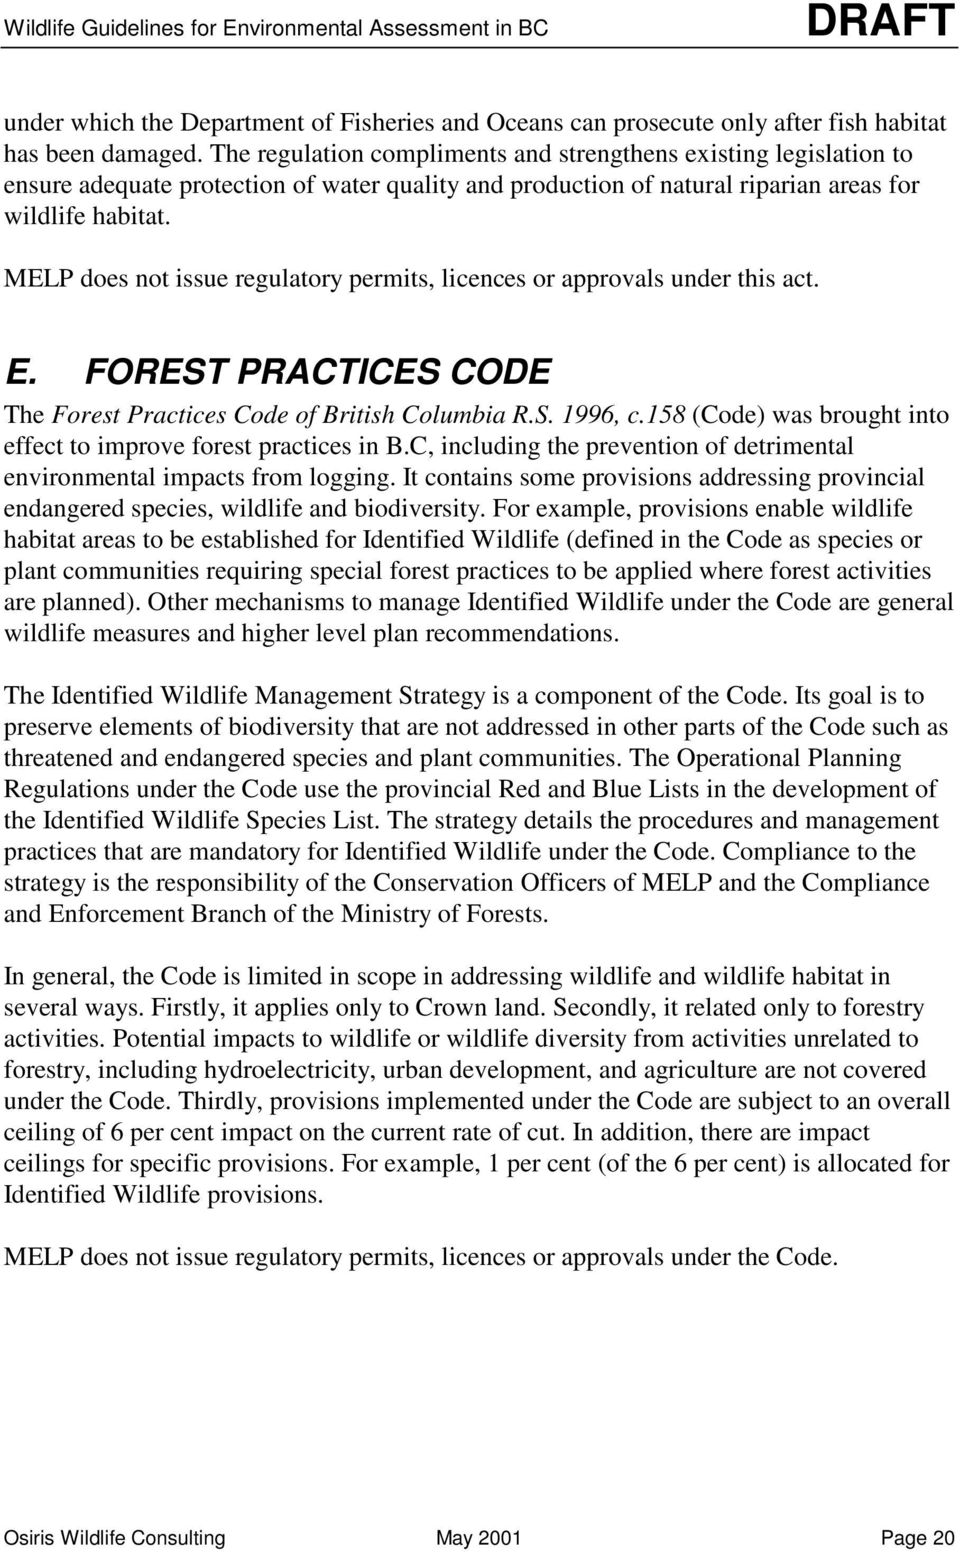 MELP does not issue regulatory permits, licences or approvals under this act. E. FOREST PRACTICES CODE The Forest Practices Code of British Columbia R.S. 1996, c.